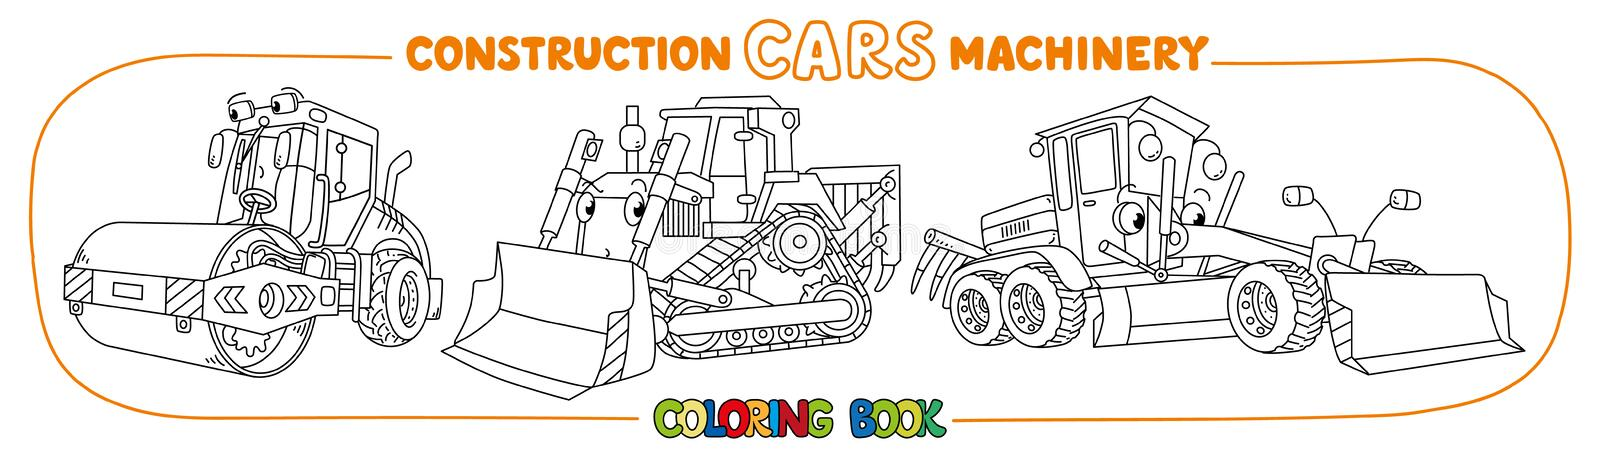 Construction Machinery Transport Coloring Book Stock Vector ...